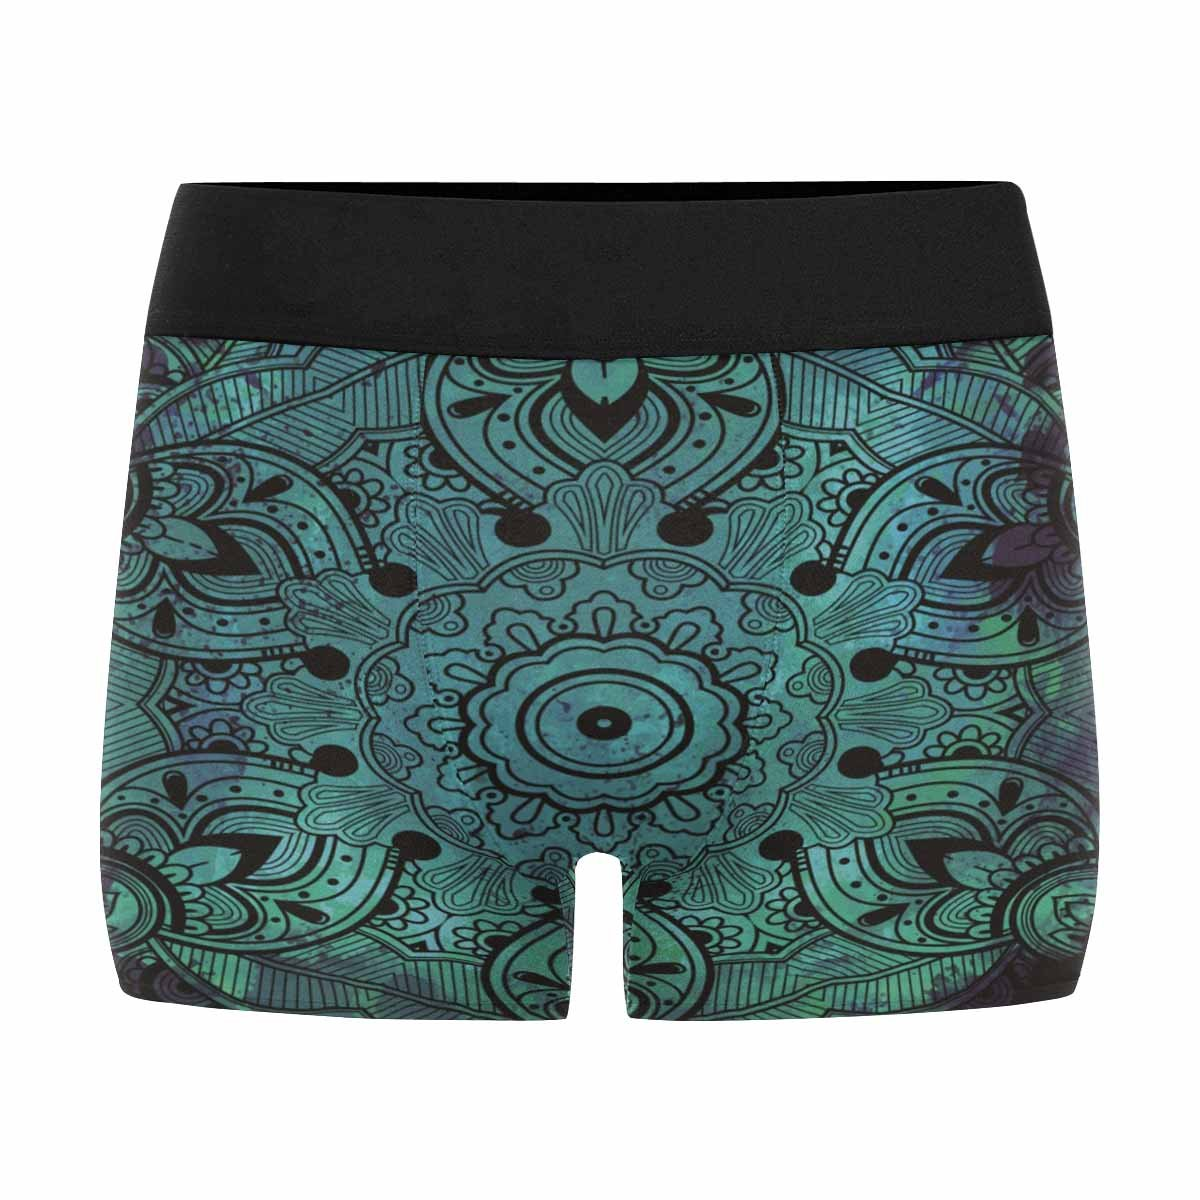 XS-3XL INTERESTPRINT Custom Mens Boxer Briefs Ornate Paisley Mandala Green